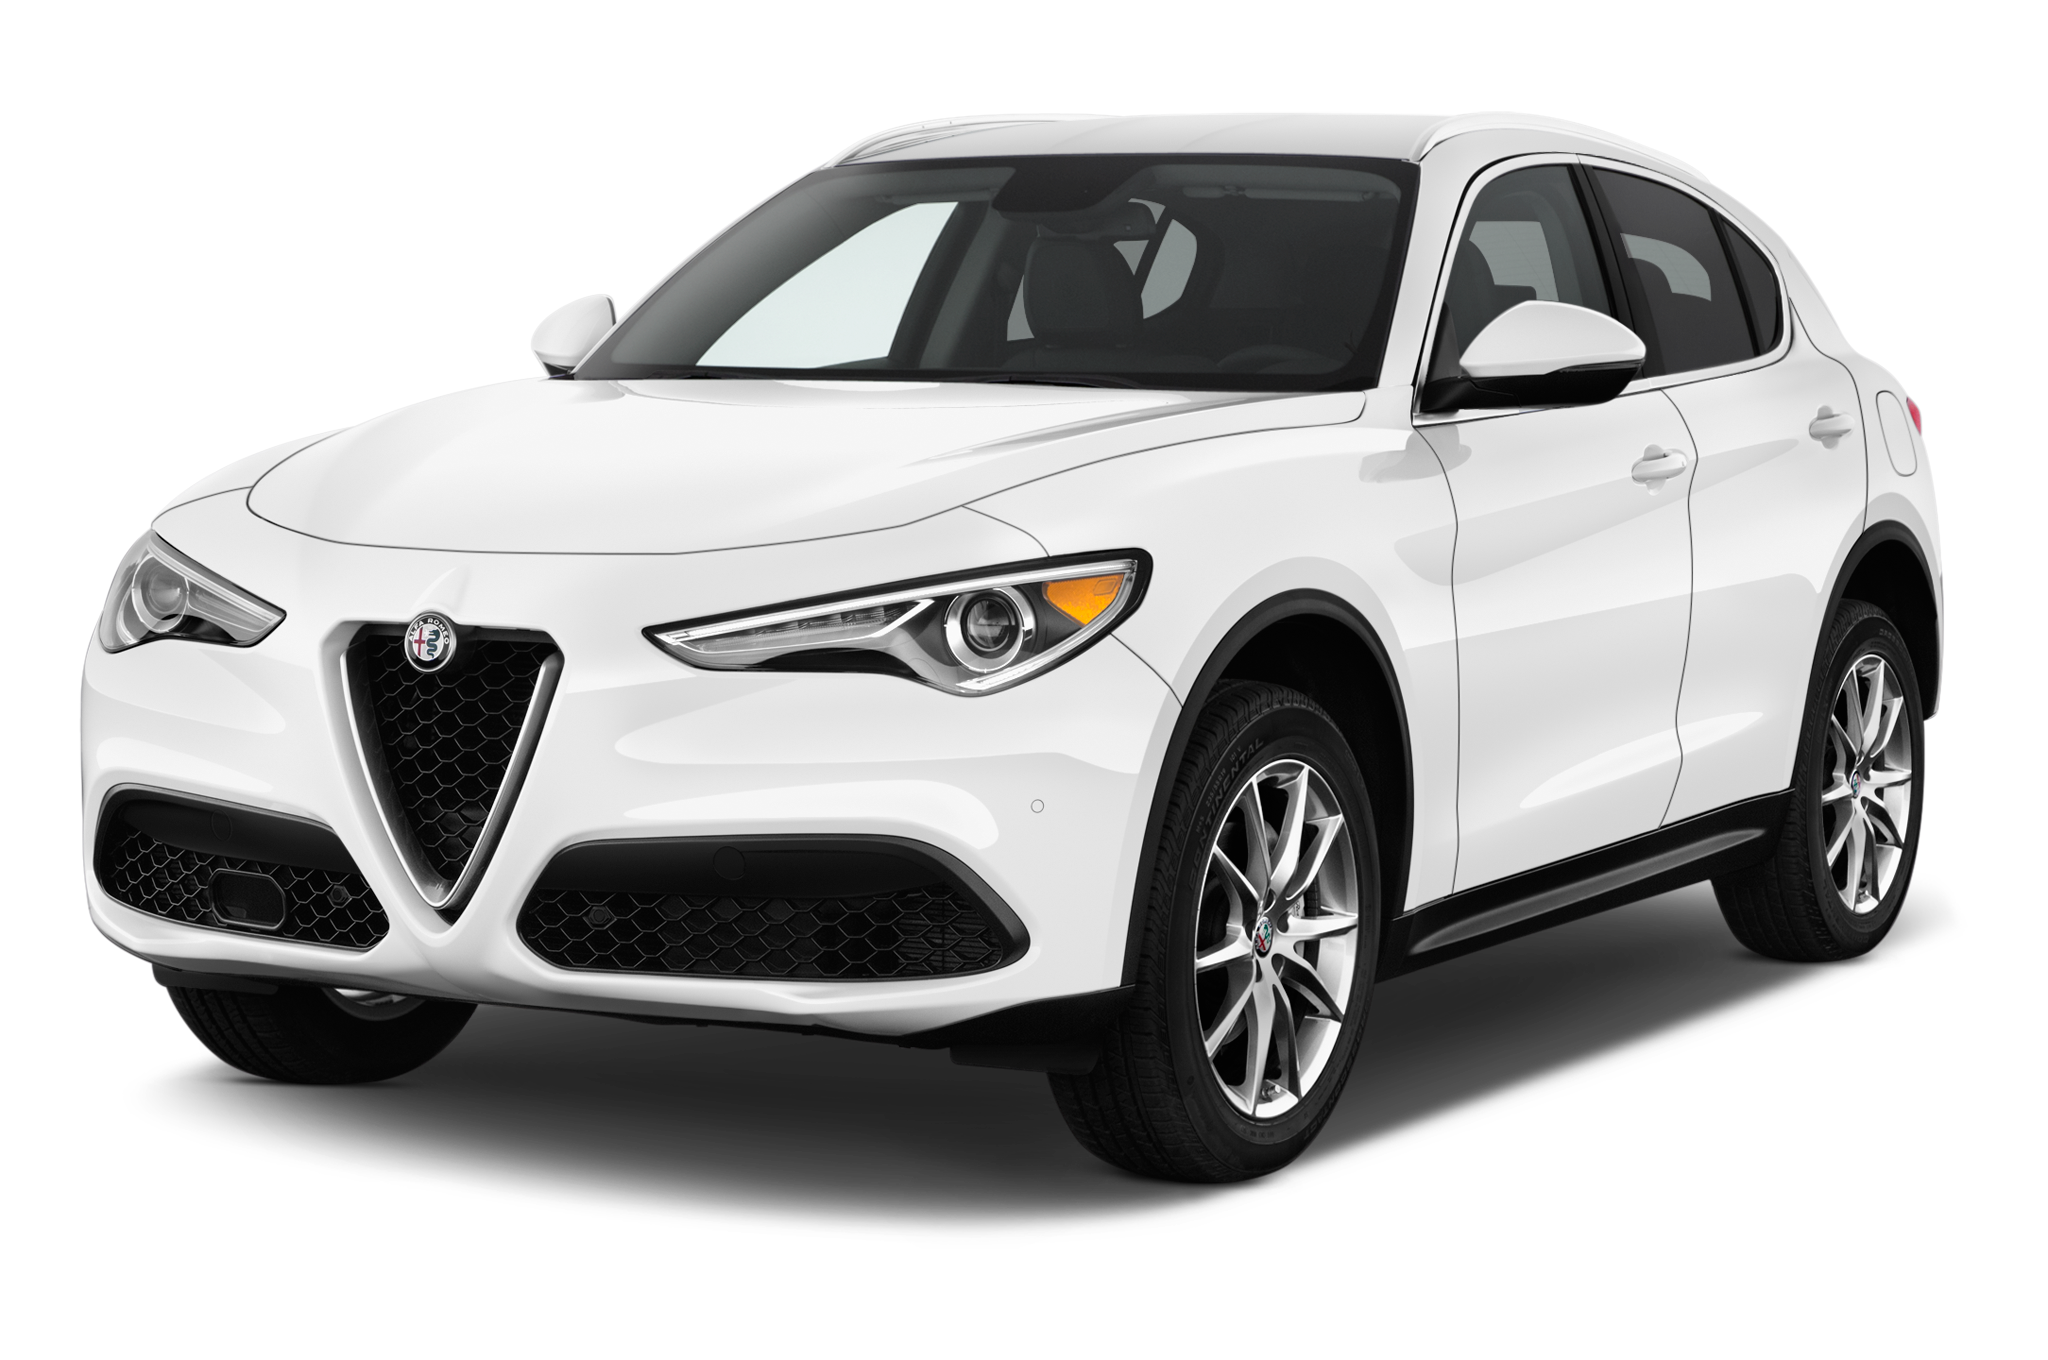 2018 alfa romeo stelvio sport awd specs and features msn. Black Bedroom Furniture Sets. Home Design Ideas